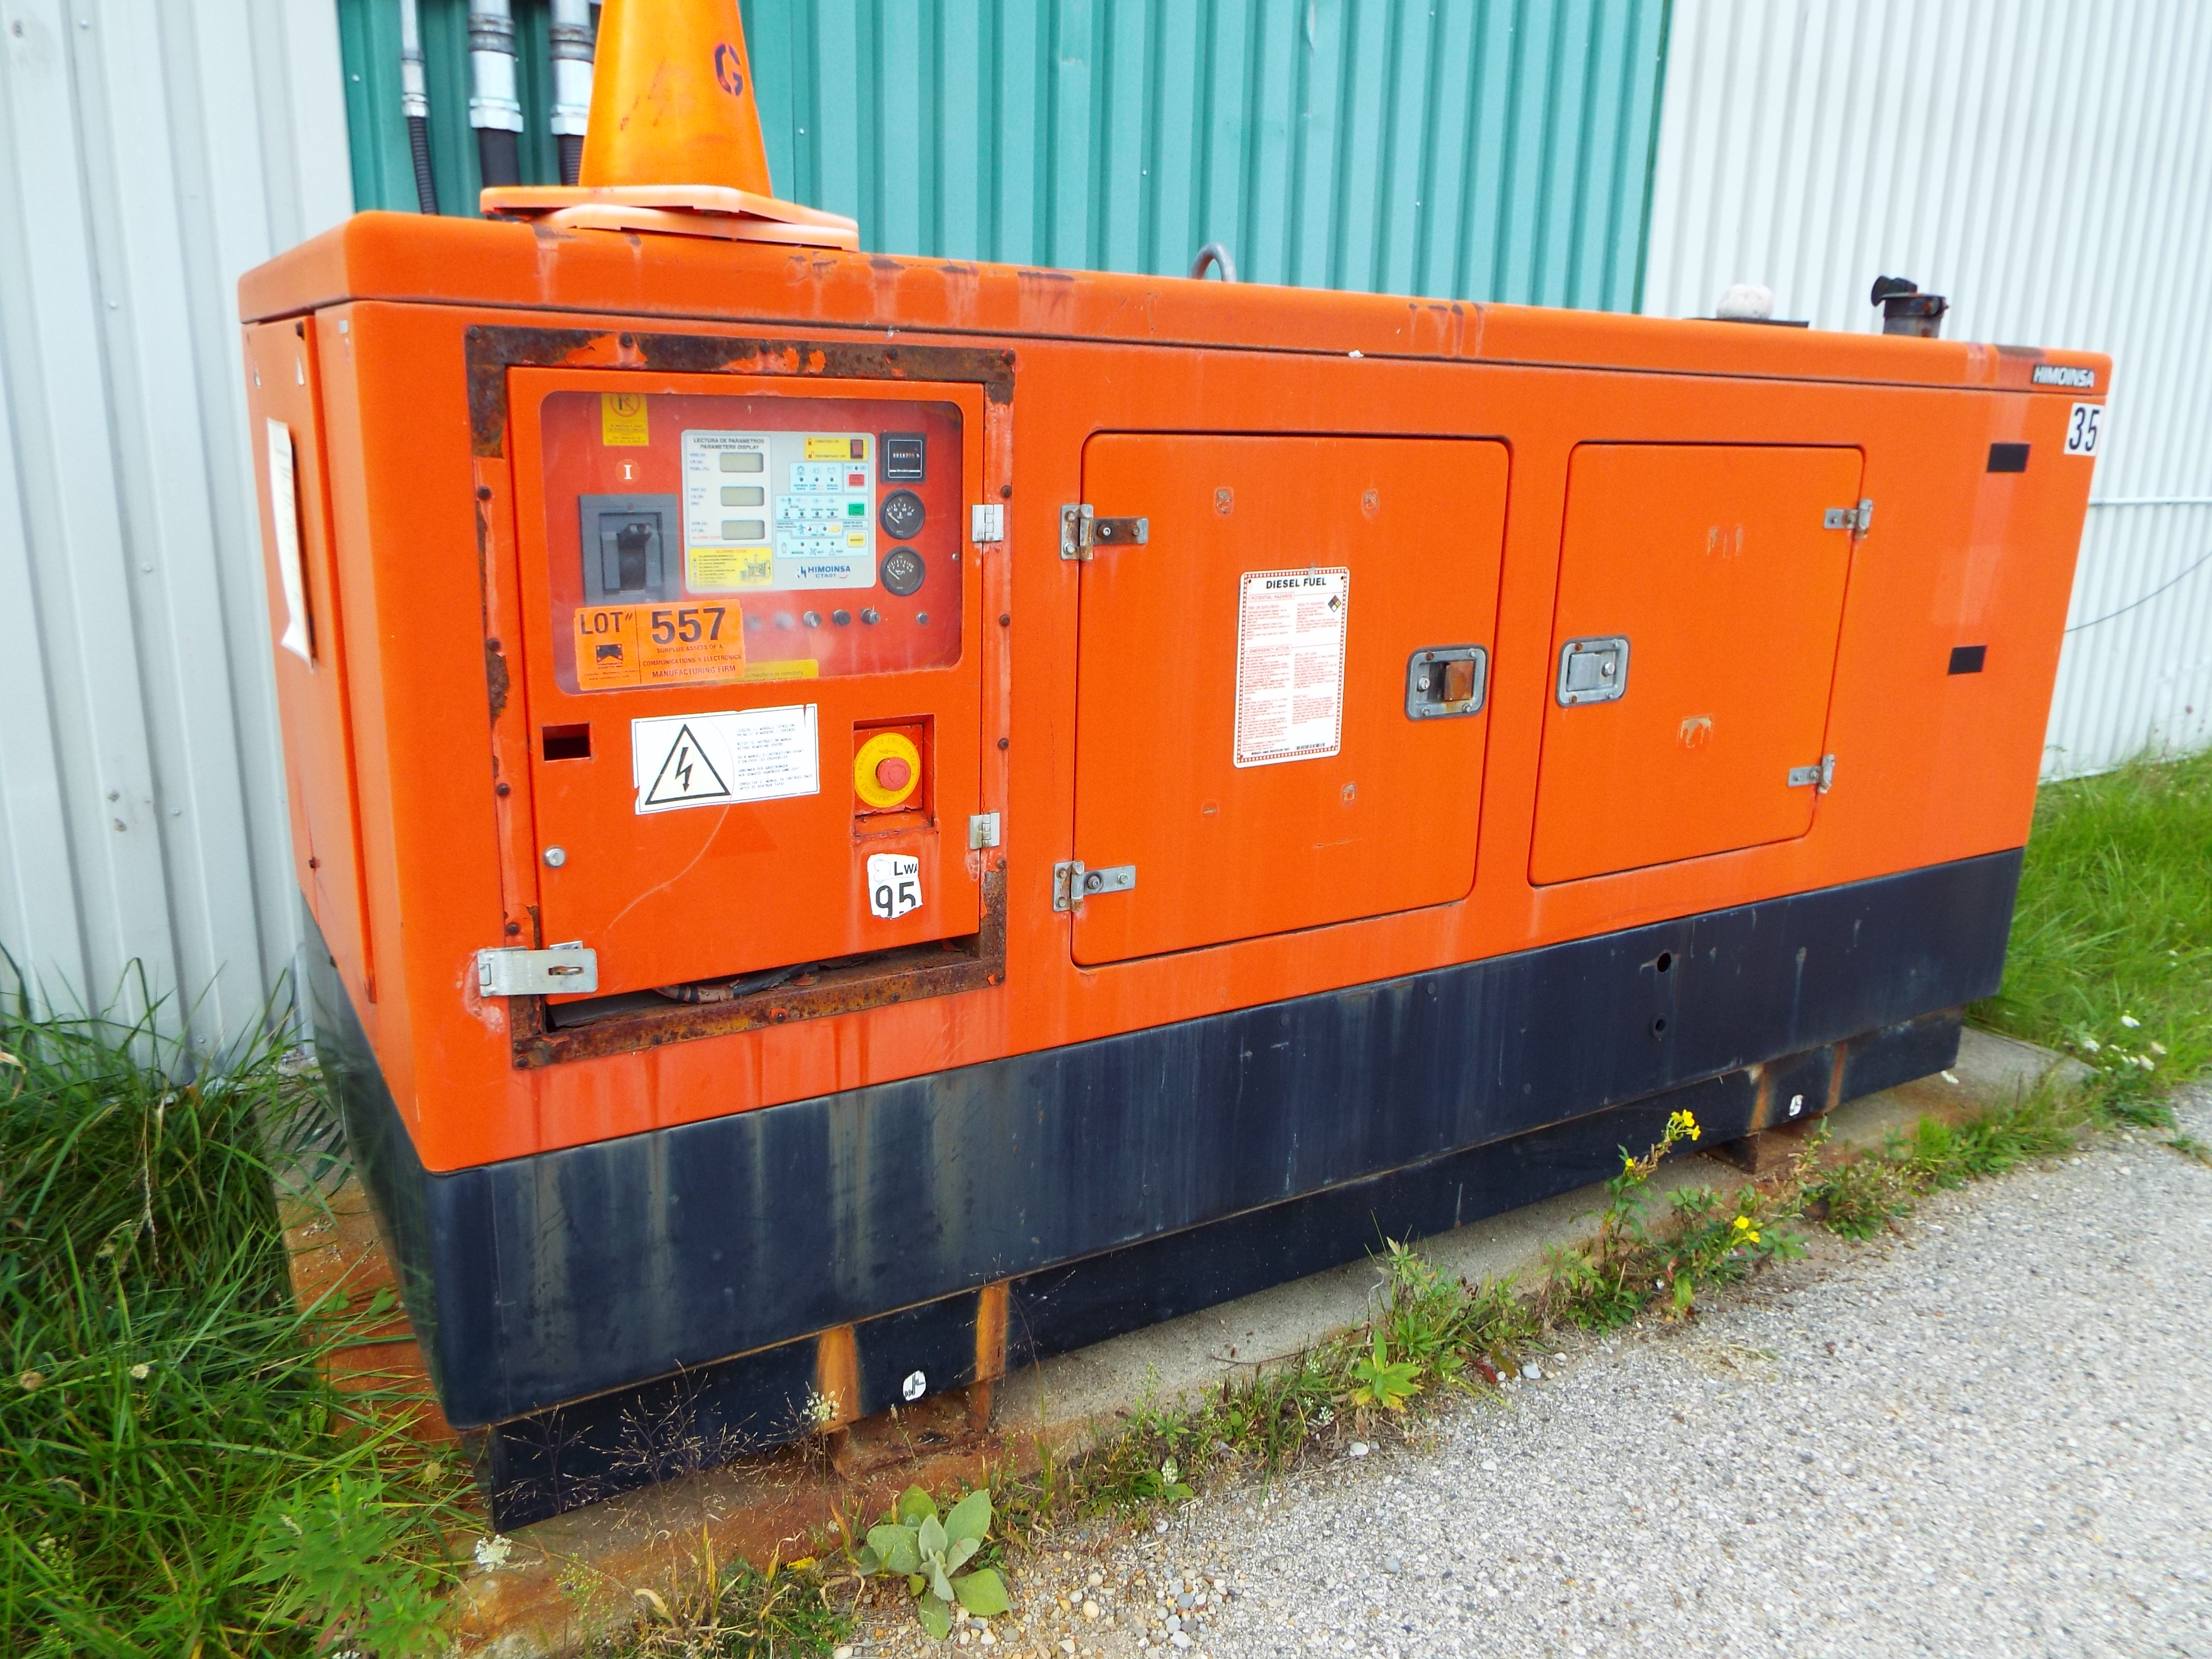 HIMOINSA GPO EST INS 1800 G CE DIESEL STANDBY GENERATOR WITH